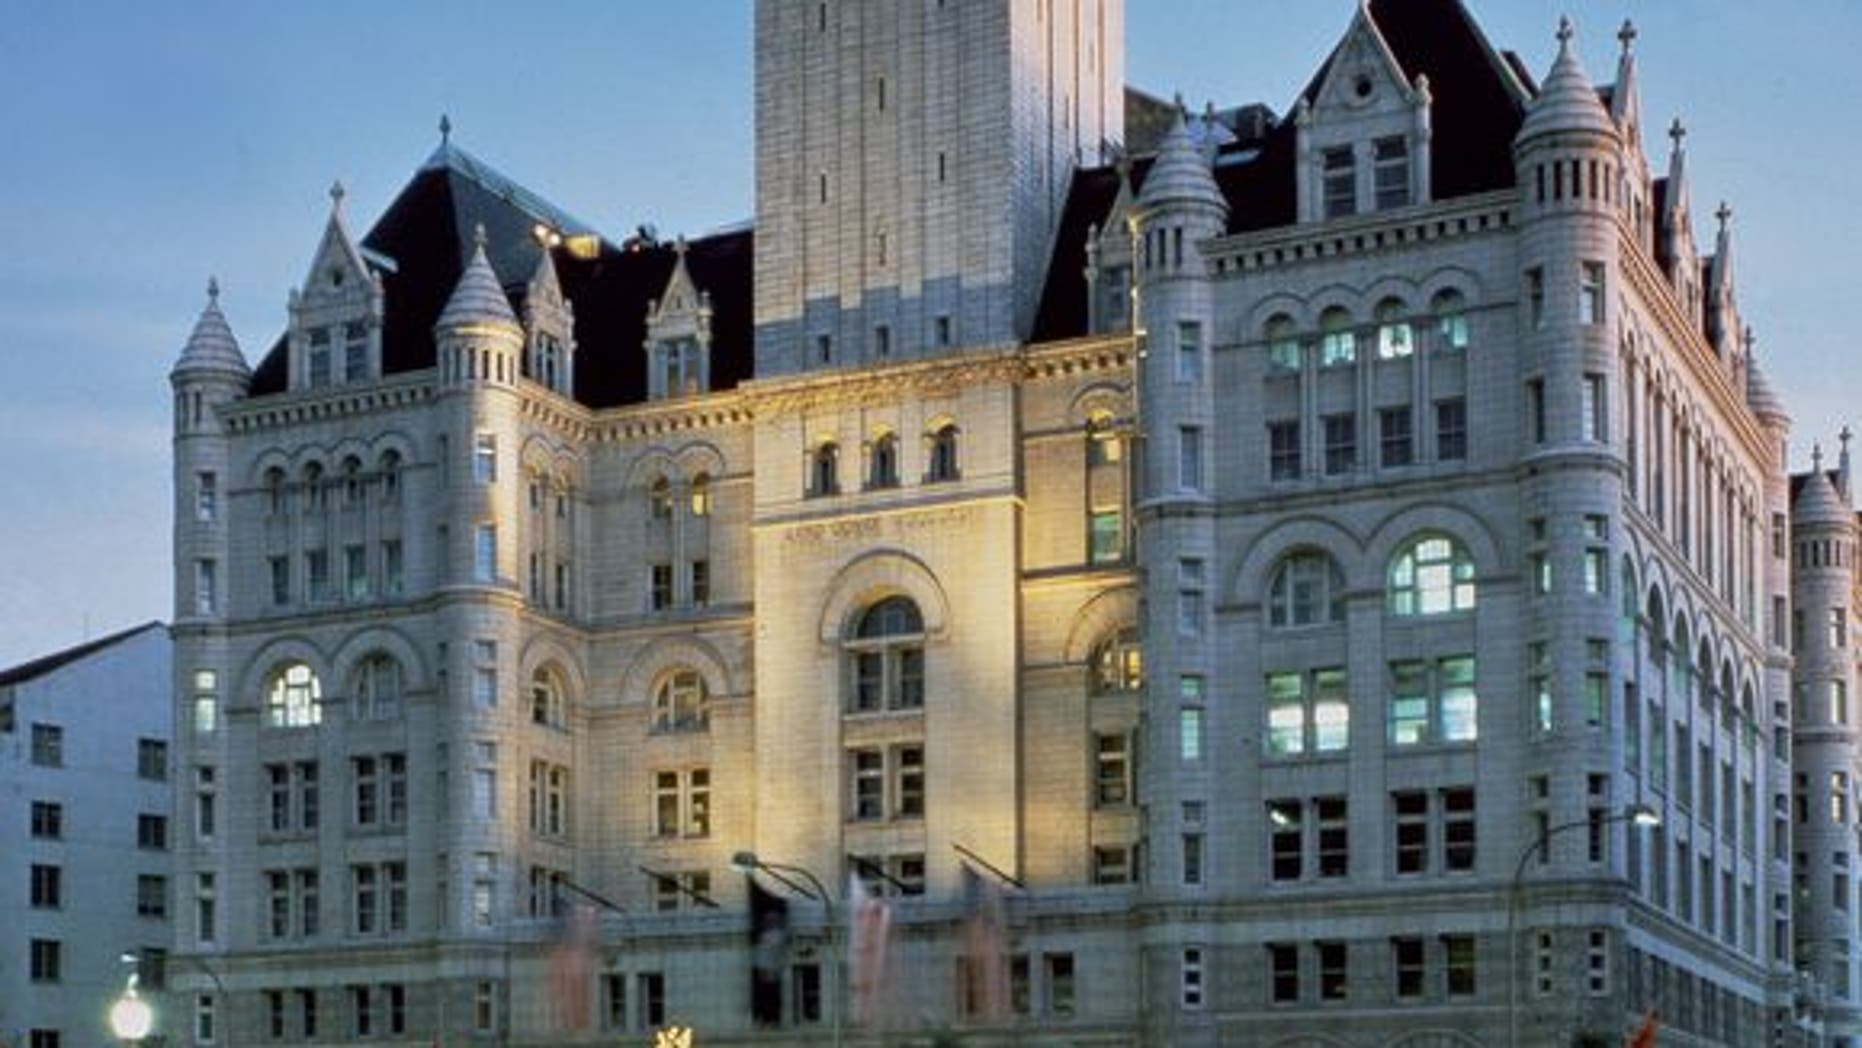 The 270-foot-high observation deck of the Clock Tower at the Old Post Office affords some of the best views of the nation's capita